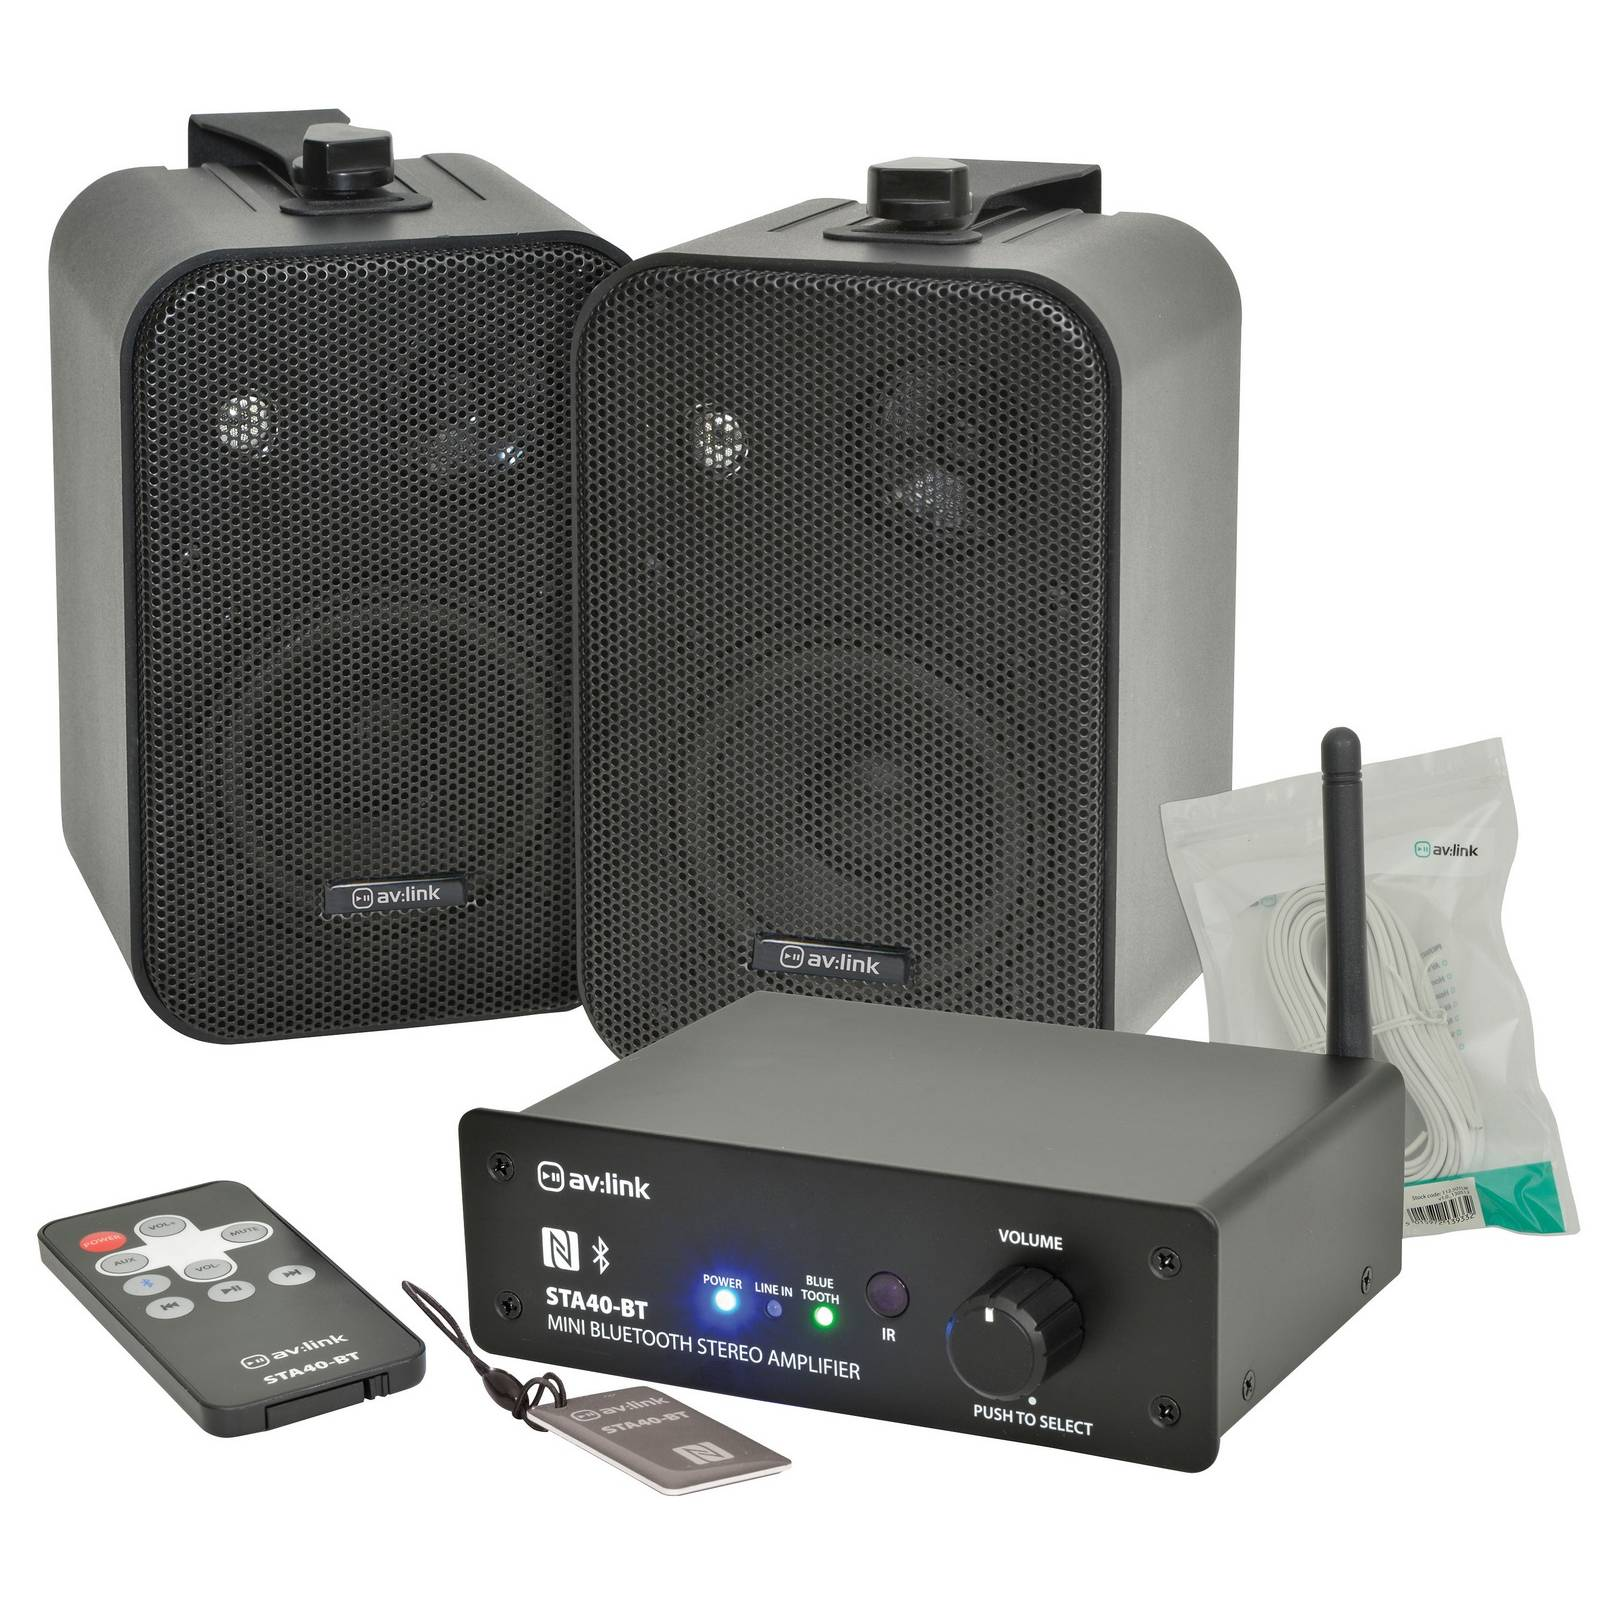 bluetooth amplifier and black speaker package complete pa system from inta audio uk. Black Bedroom Furniture Sets. Home Design Ideas